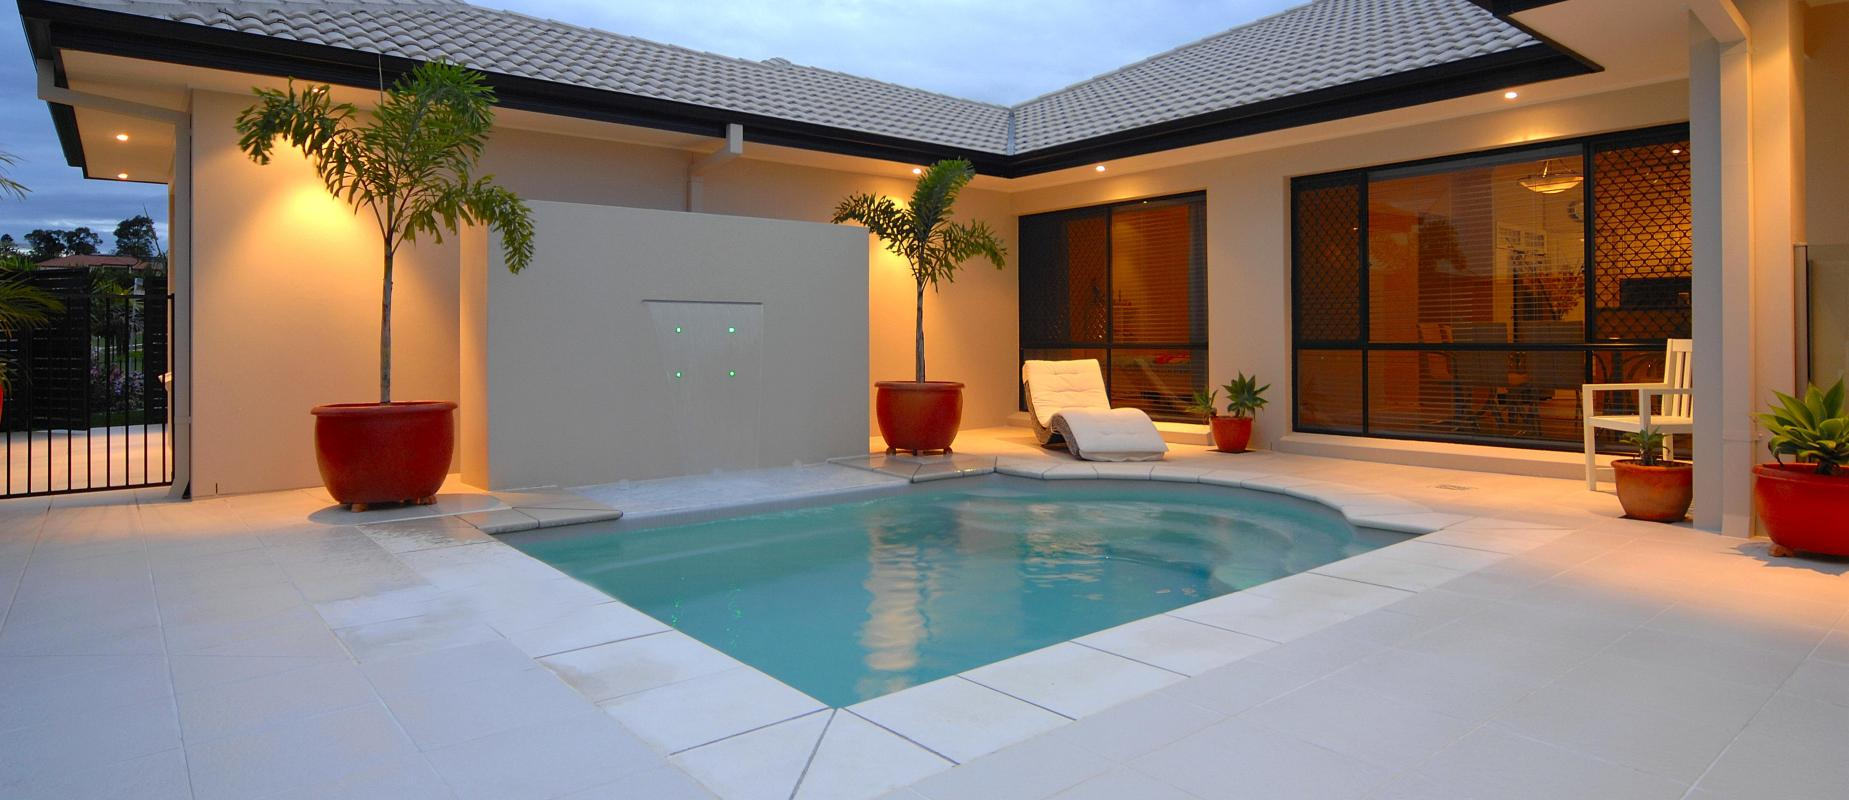 Plunge Pools - Small Courtyard Swimming Pools | Compass Pools